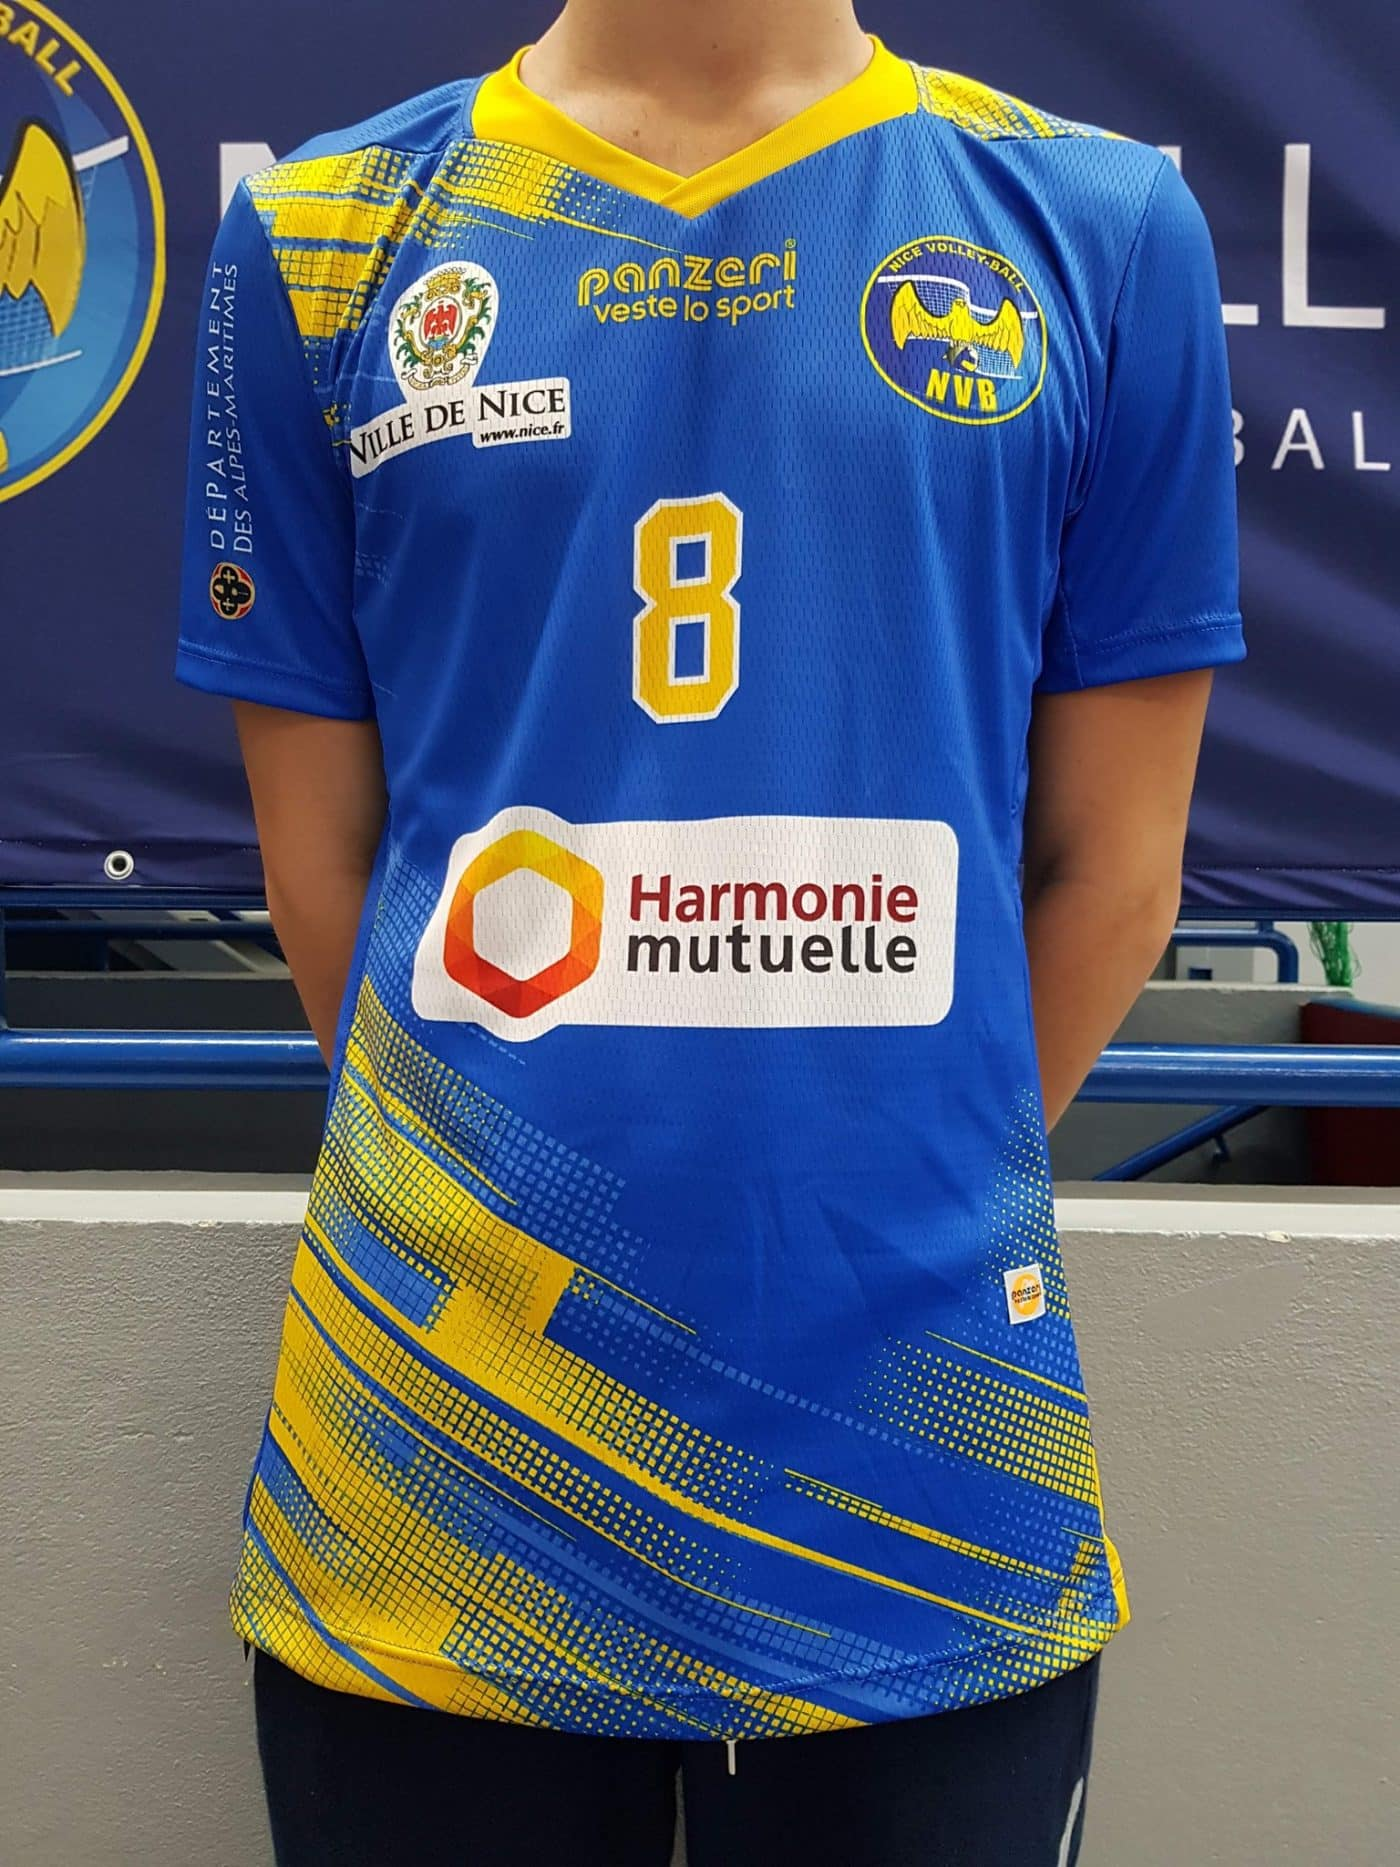 maillot-volley-LAM-2019-2020-nice-volley-panzeri-1